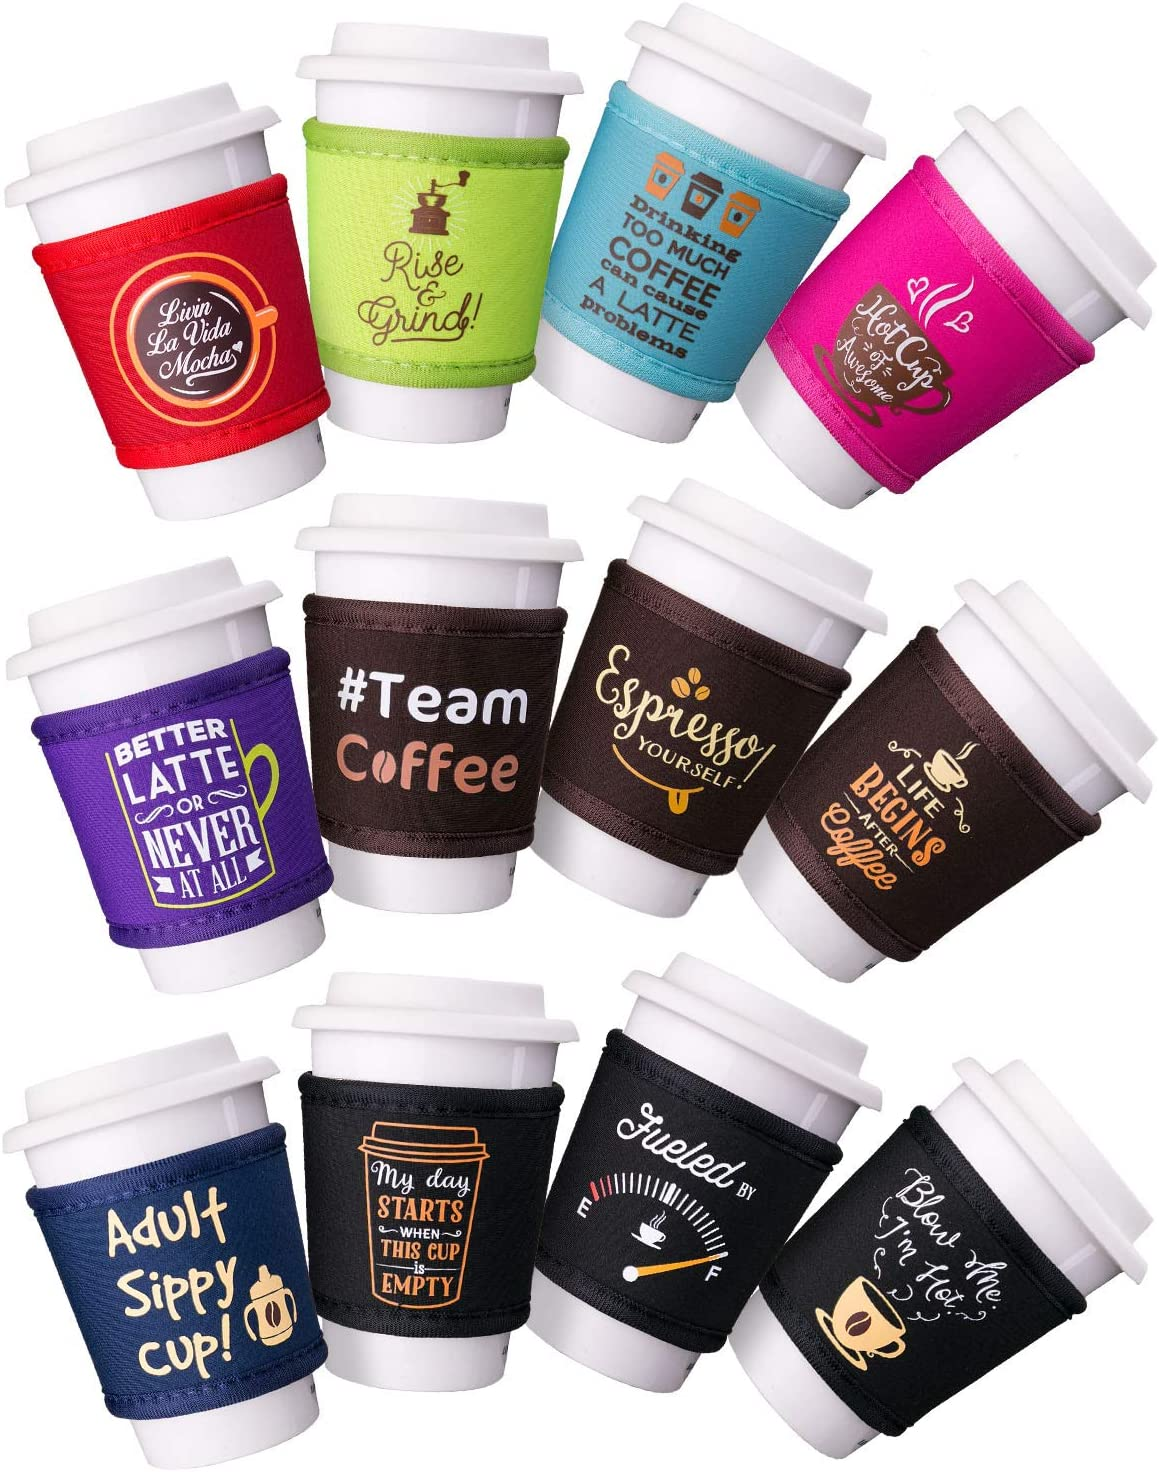 CoffeeCup Review 2020 Why There Are so Many Mixed Reviews